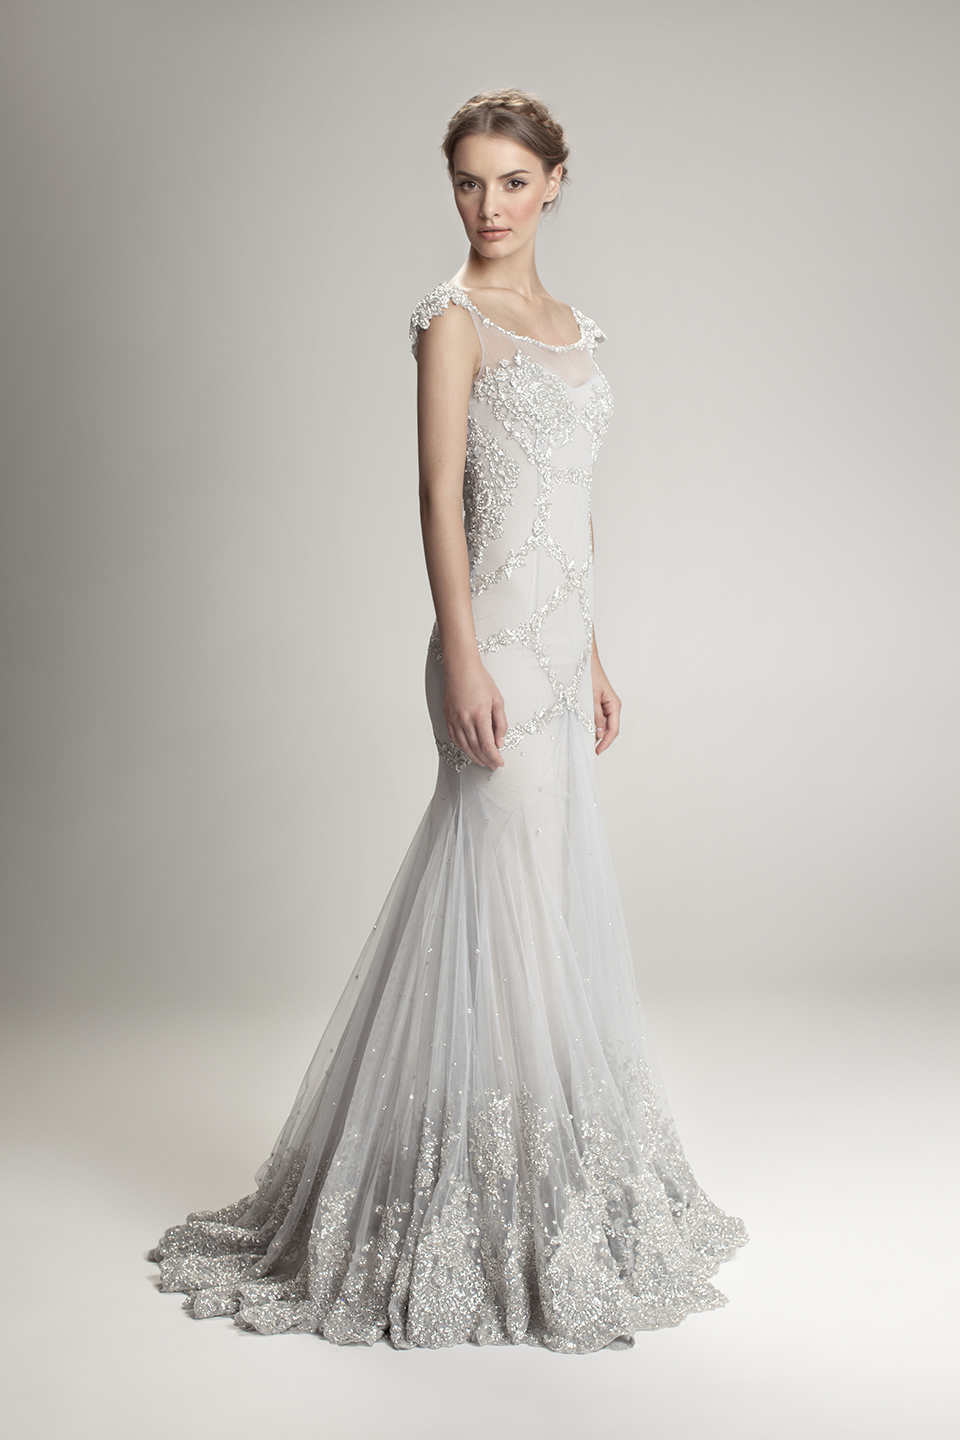 Hamda al fahim autumn fall collection the rabbit hole for 1920 style wedding dress